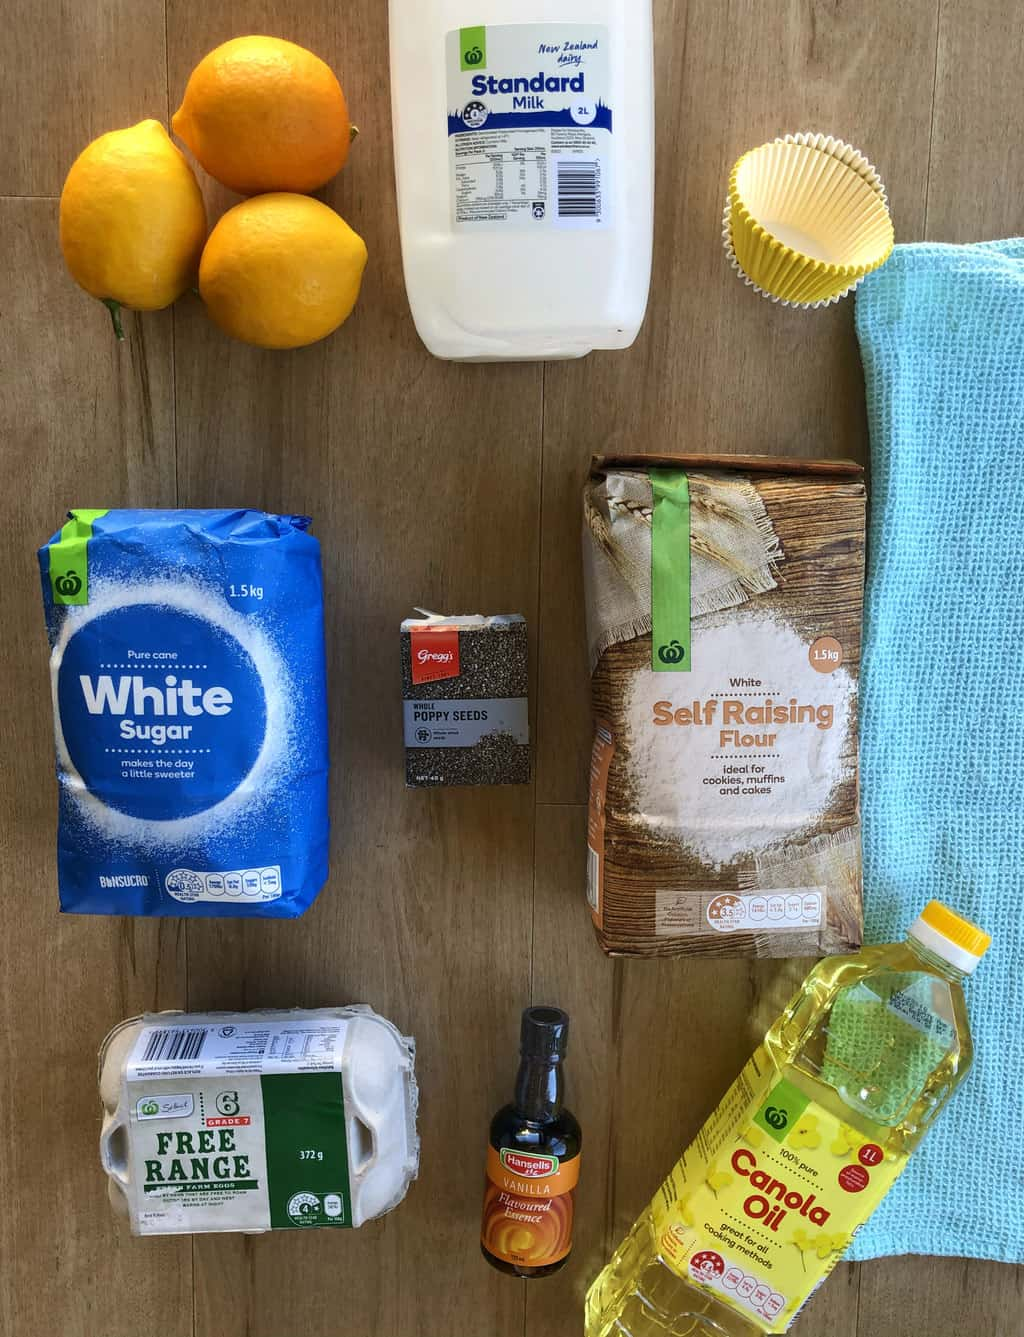 Image shows the ingredients in the lemon and poppy seed muffins, fresh lemons, milk, sugar, poppy seeds, self raising flour, oil, vanilla and eggs